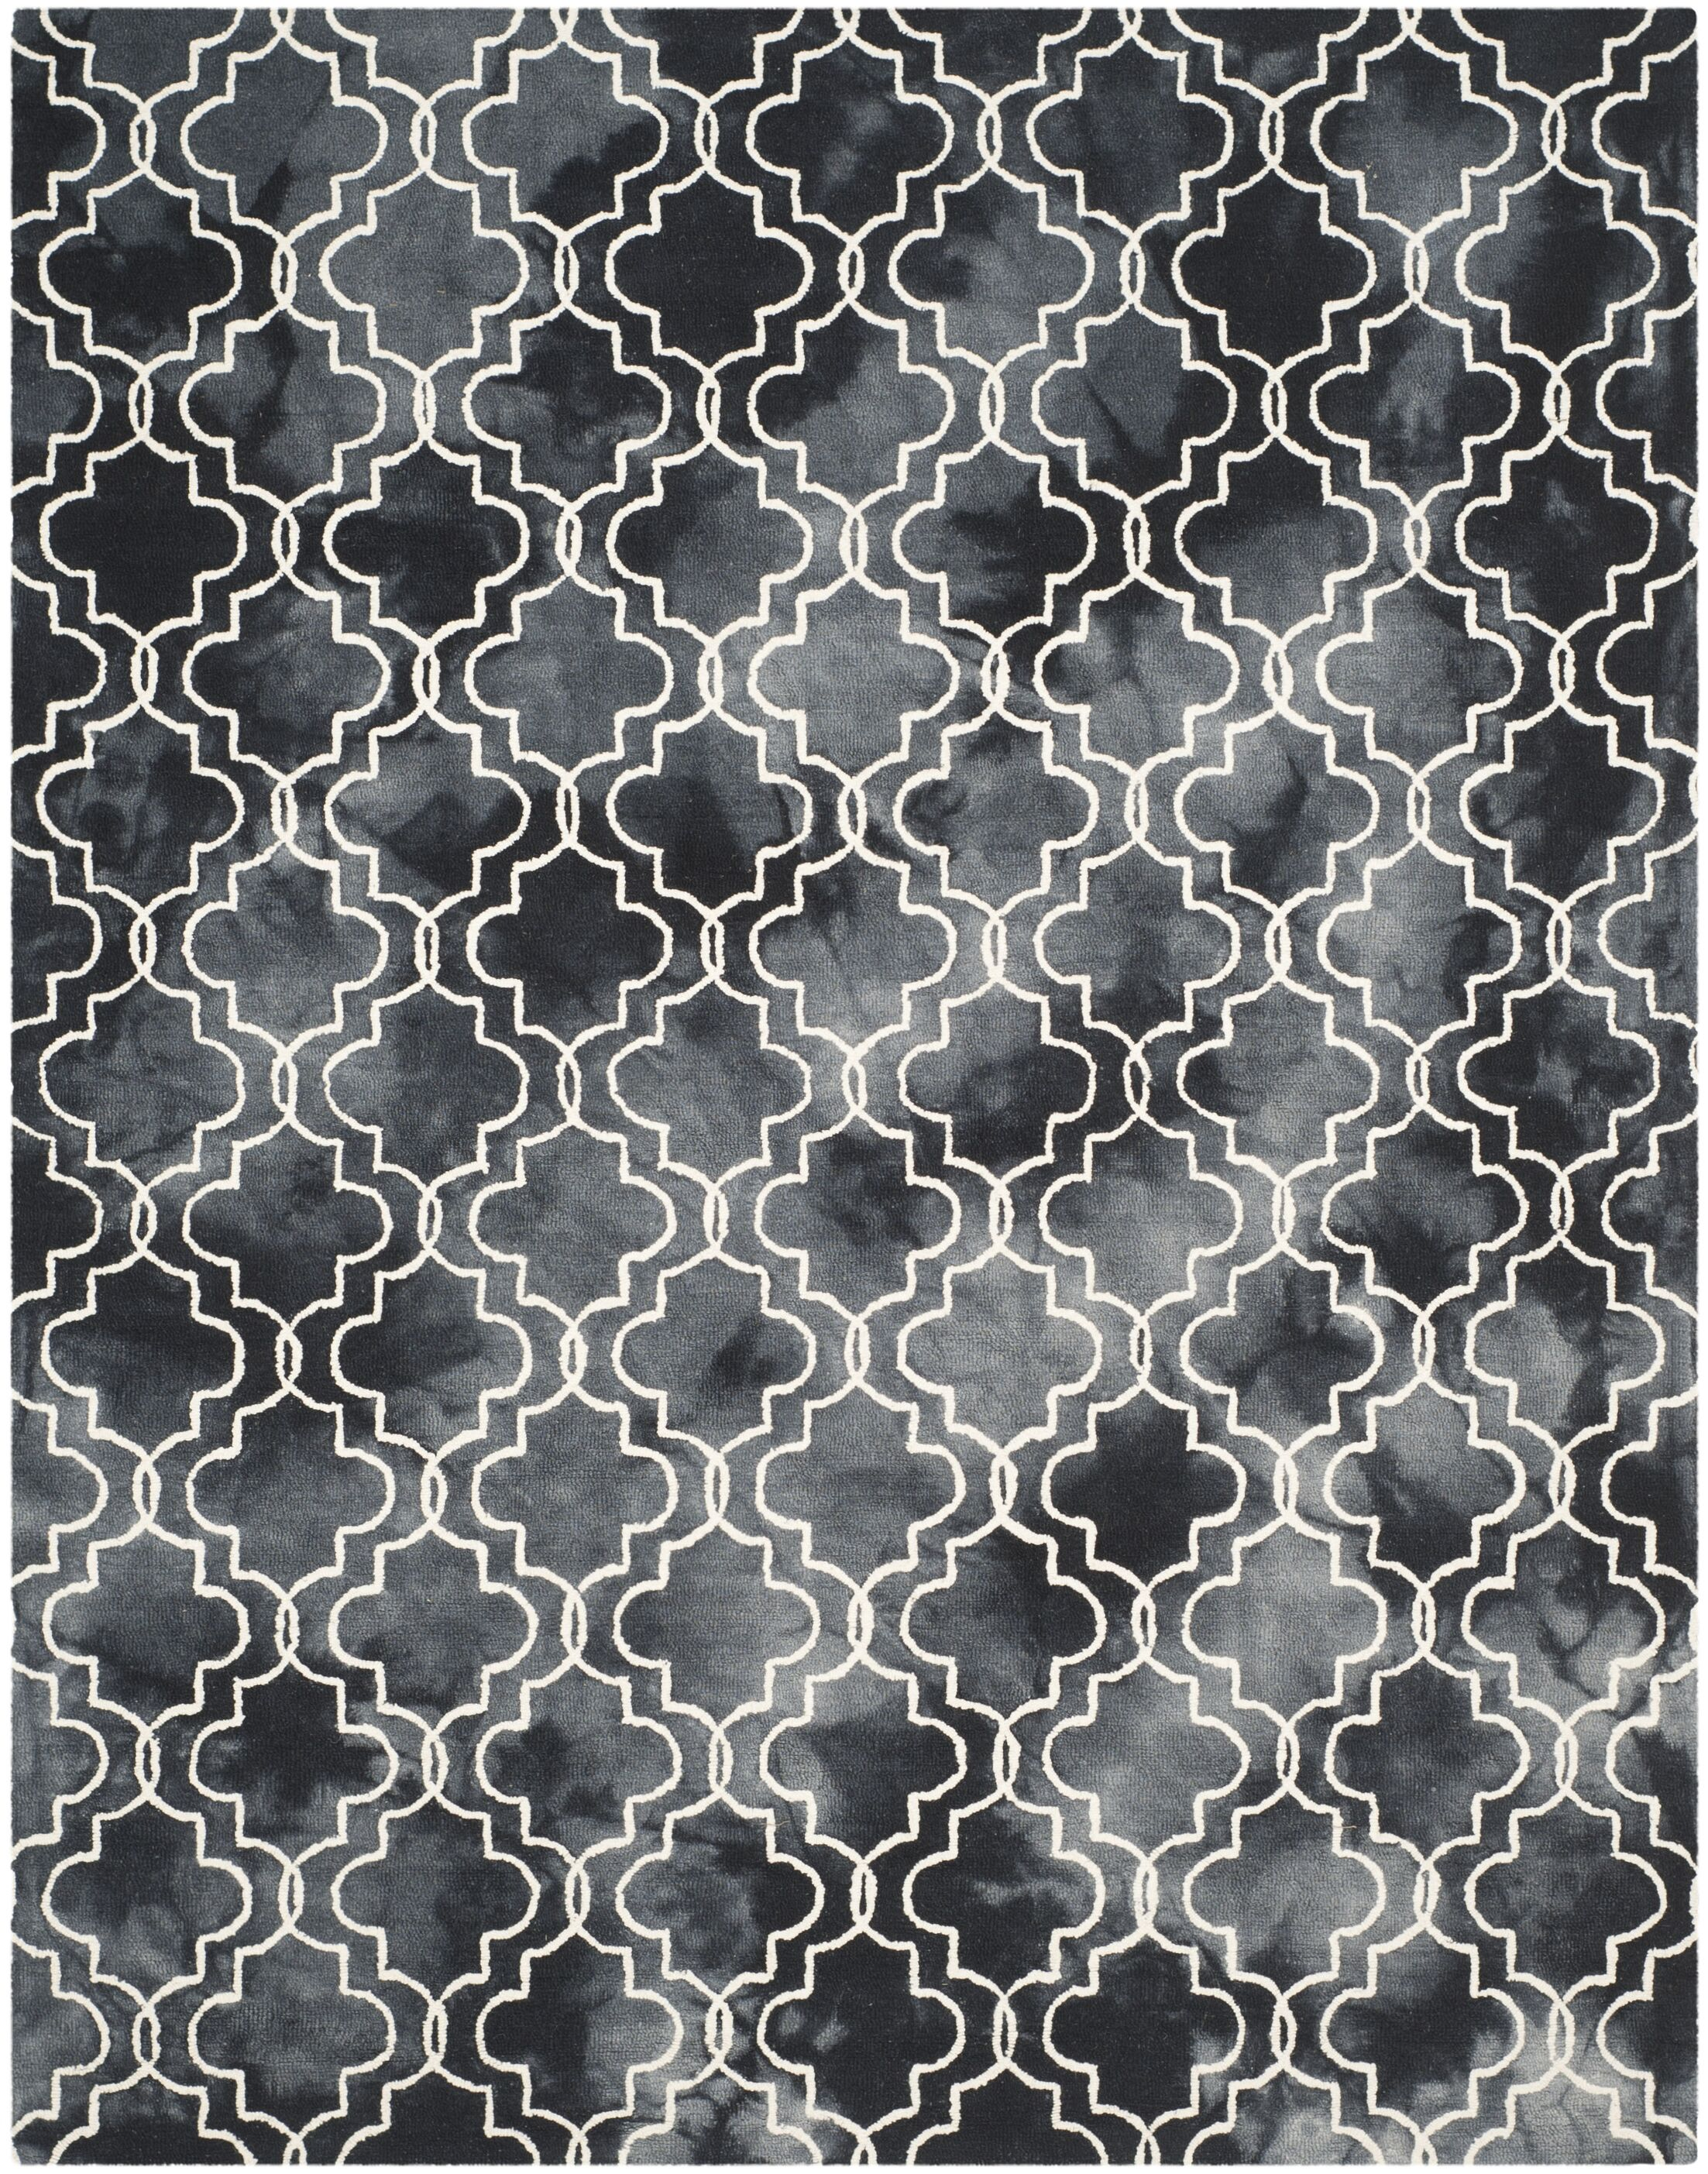 Matthews Hand-Tufted Graphite/Ivory Area Rug Rug Size: Rectangle 5' x 8'